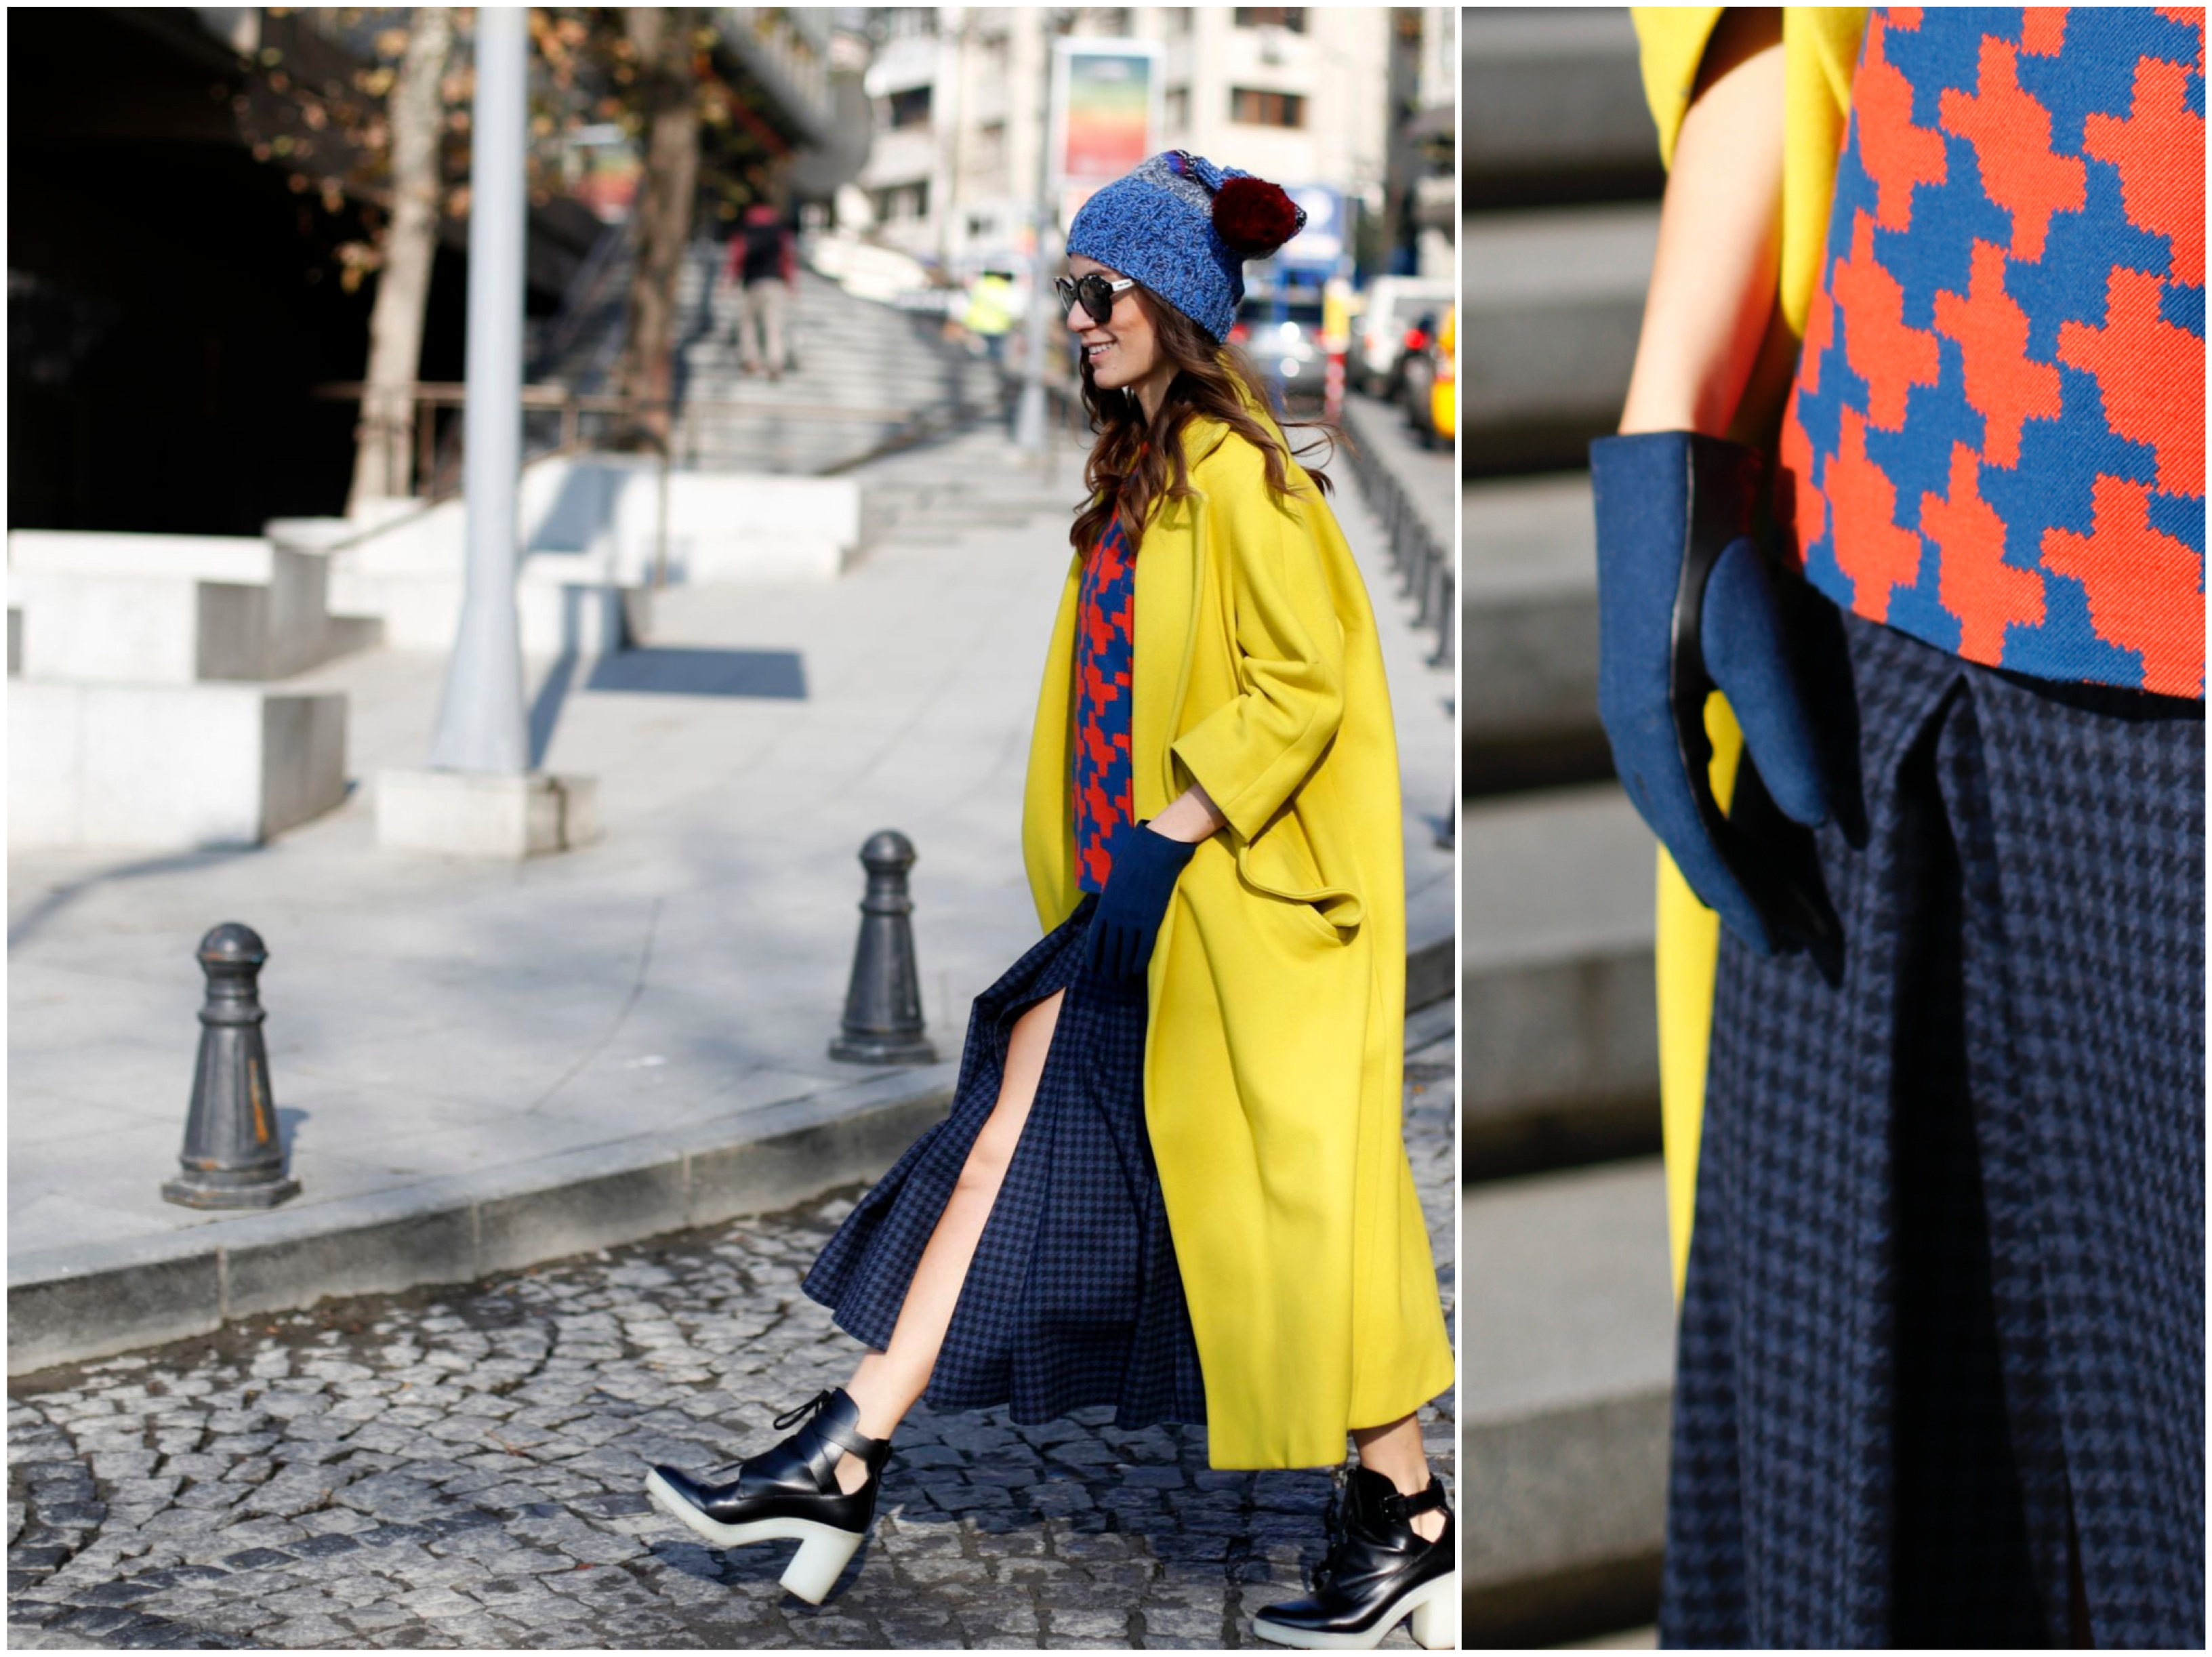 off ne giysem, billur saatci, turkish blogger, beymen academia, andotherstories, &otherstories, tommy hilfiger, dvf, diane von furstenberg, miu miu, alexander wang, gamze saraçoğlu, street style